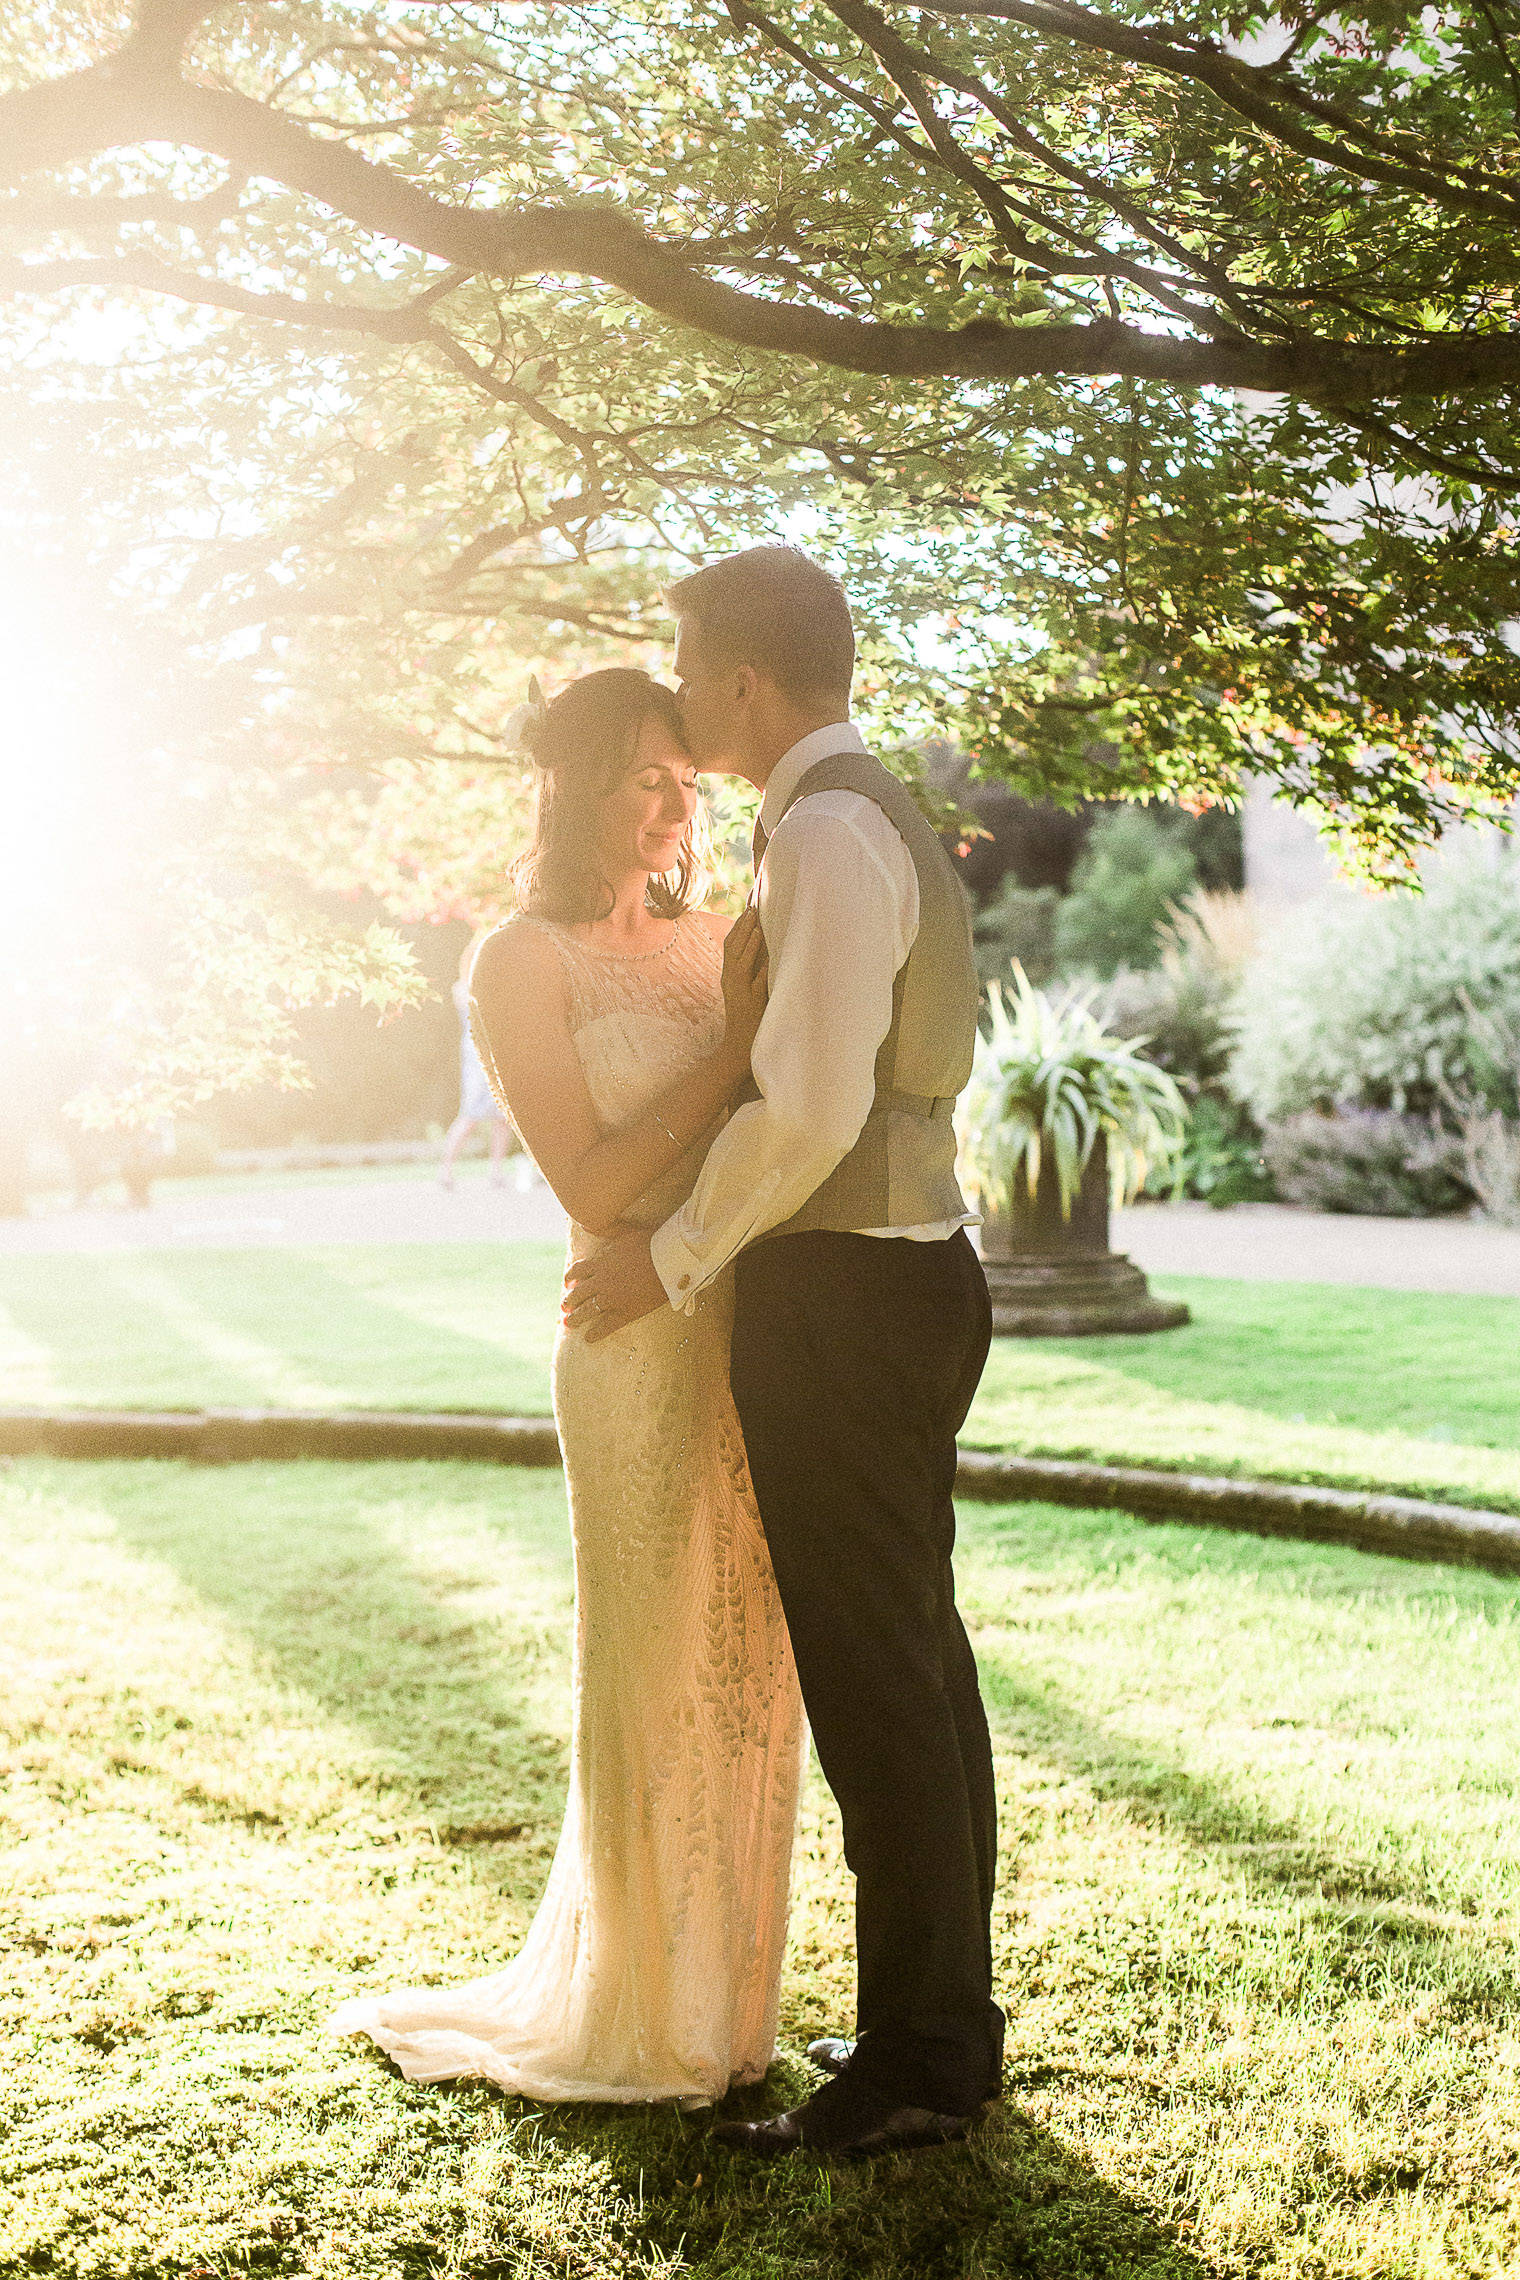 lifestyle-blogger-claire-wainwright-of-the-green-eyed-girl-shares-her-wedding-63